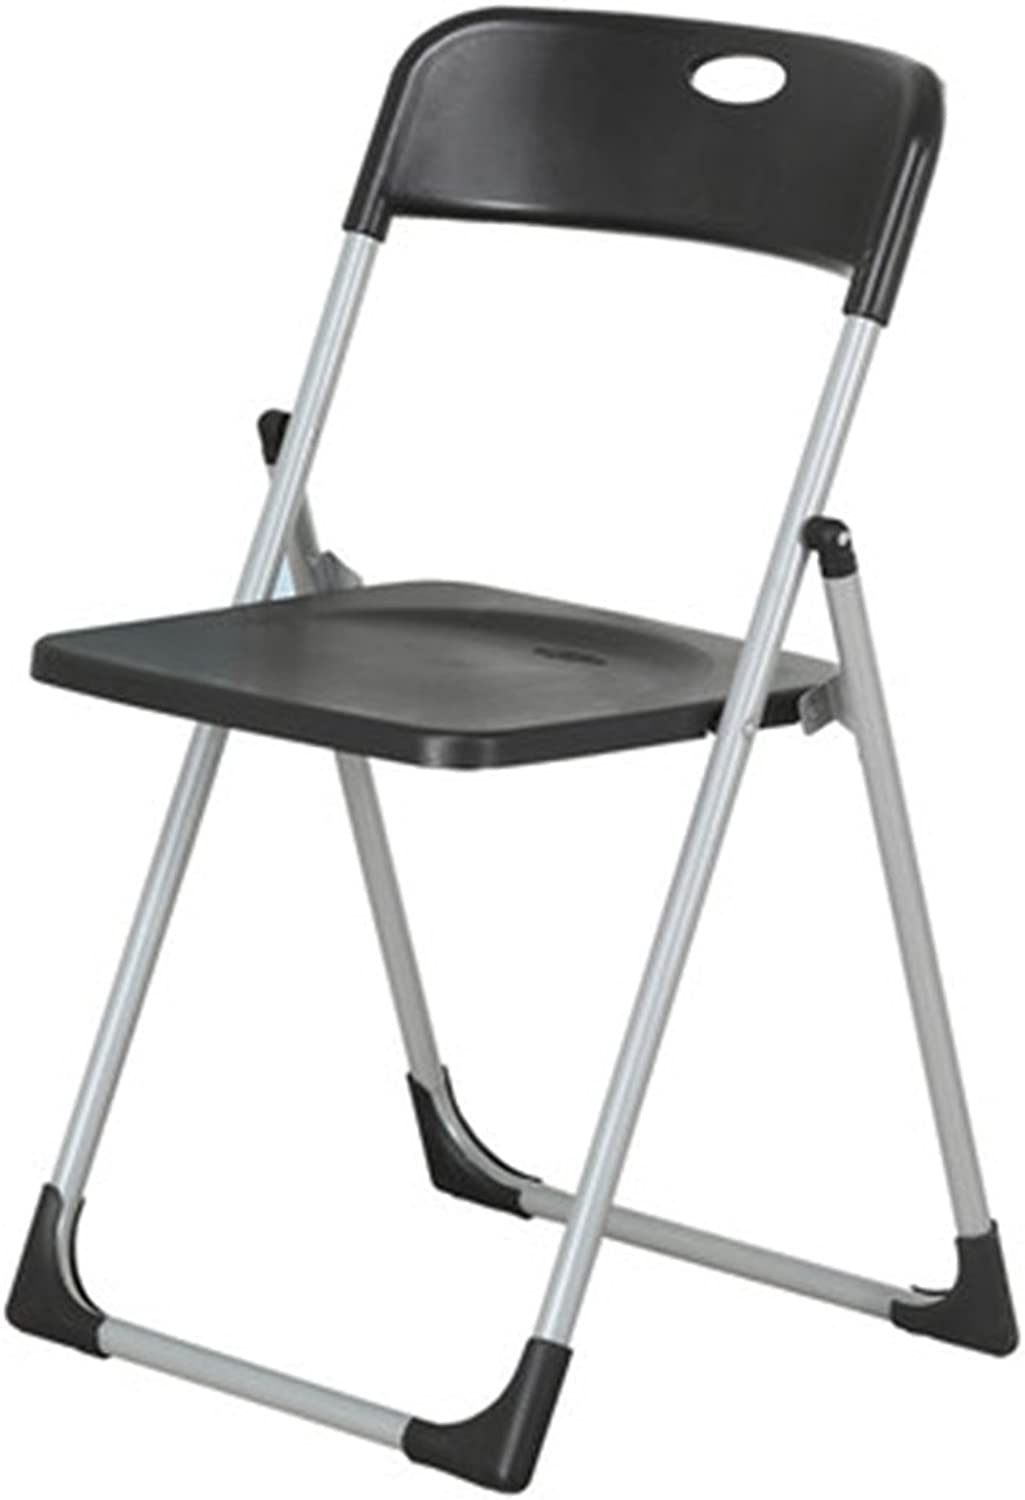 LHA Barstools Strengthen The Simple Stool Chair Home Folding Chairs Office Chairs Computer Chairs Seat Training Chairs Bar Furniture (color   A)